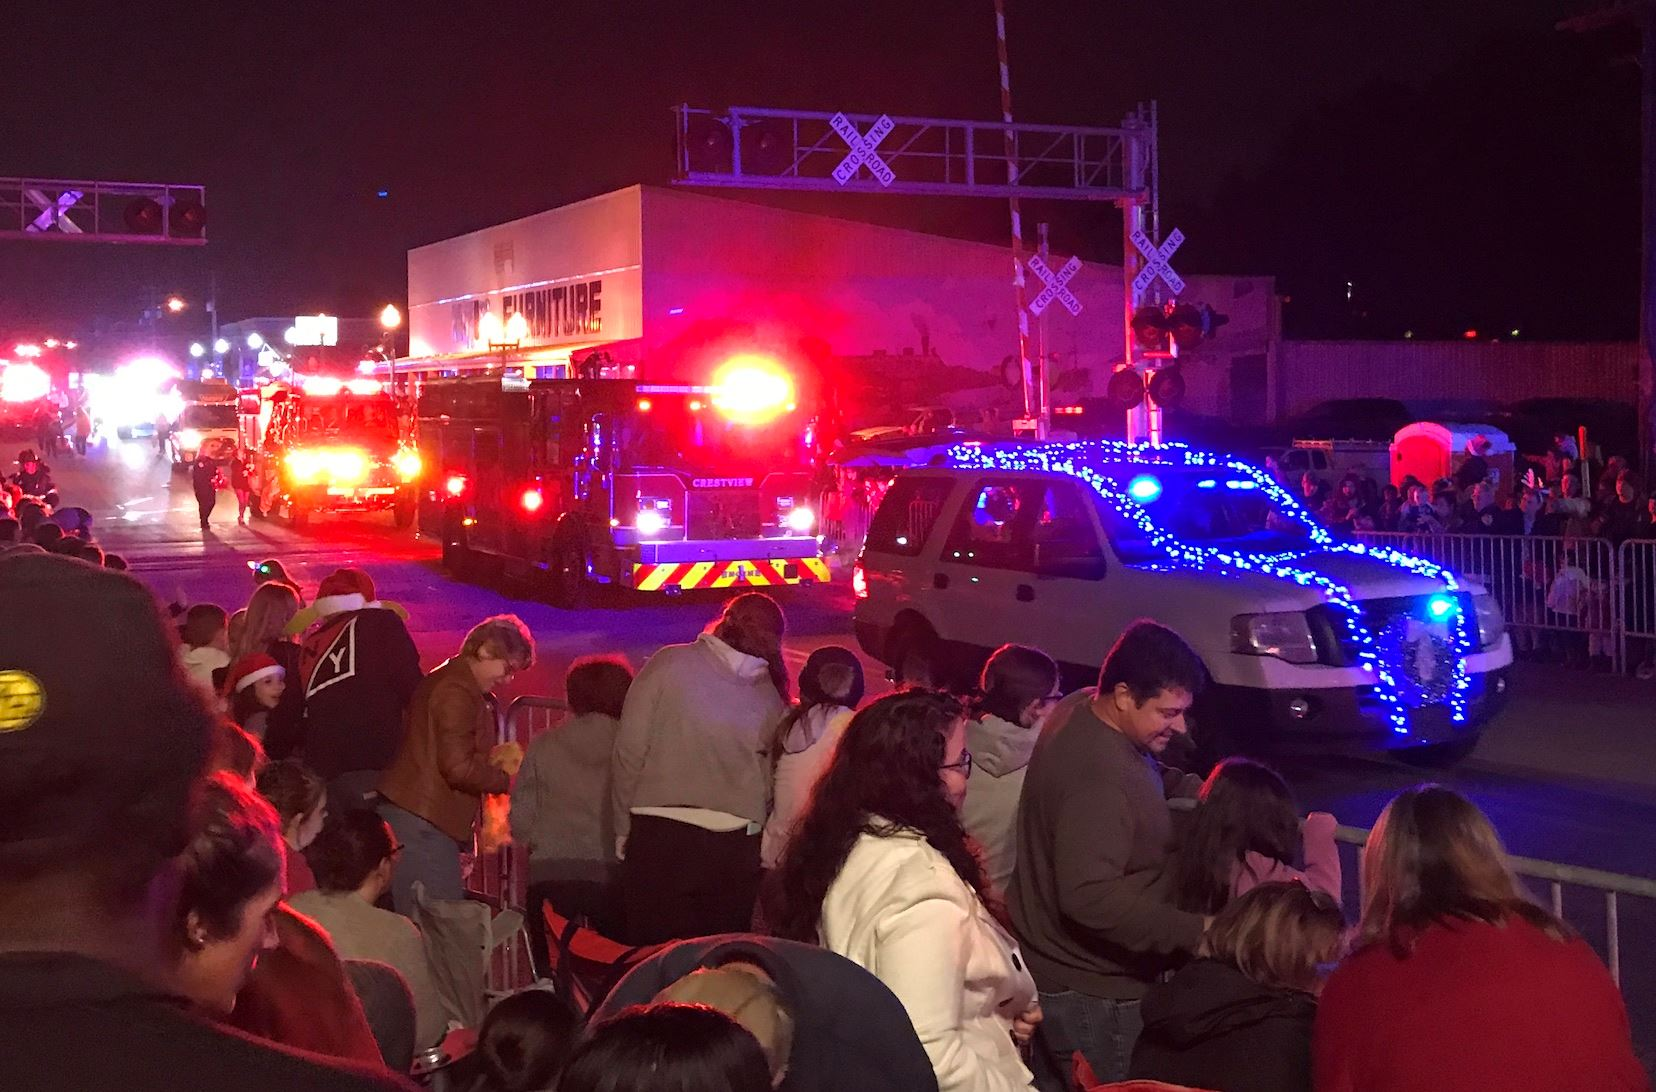 Flashing first responder vehicle lights add dazzle to the 2019 Main Street Christmas parade